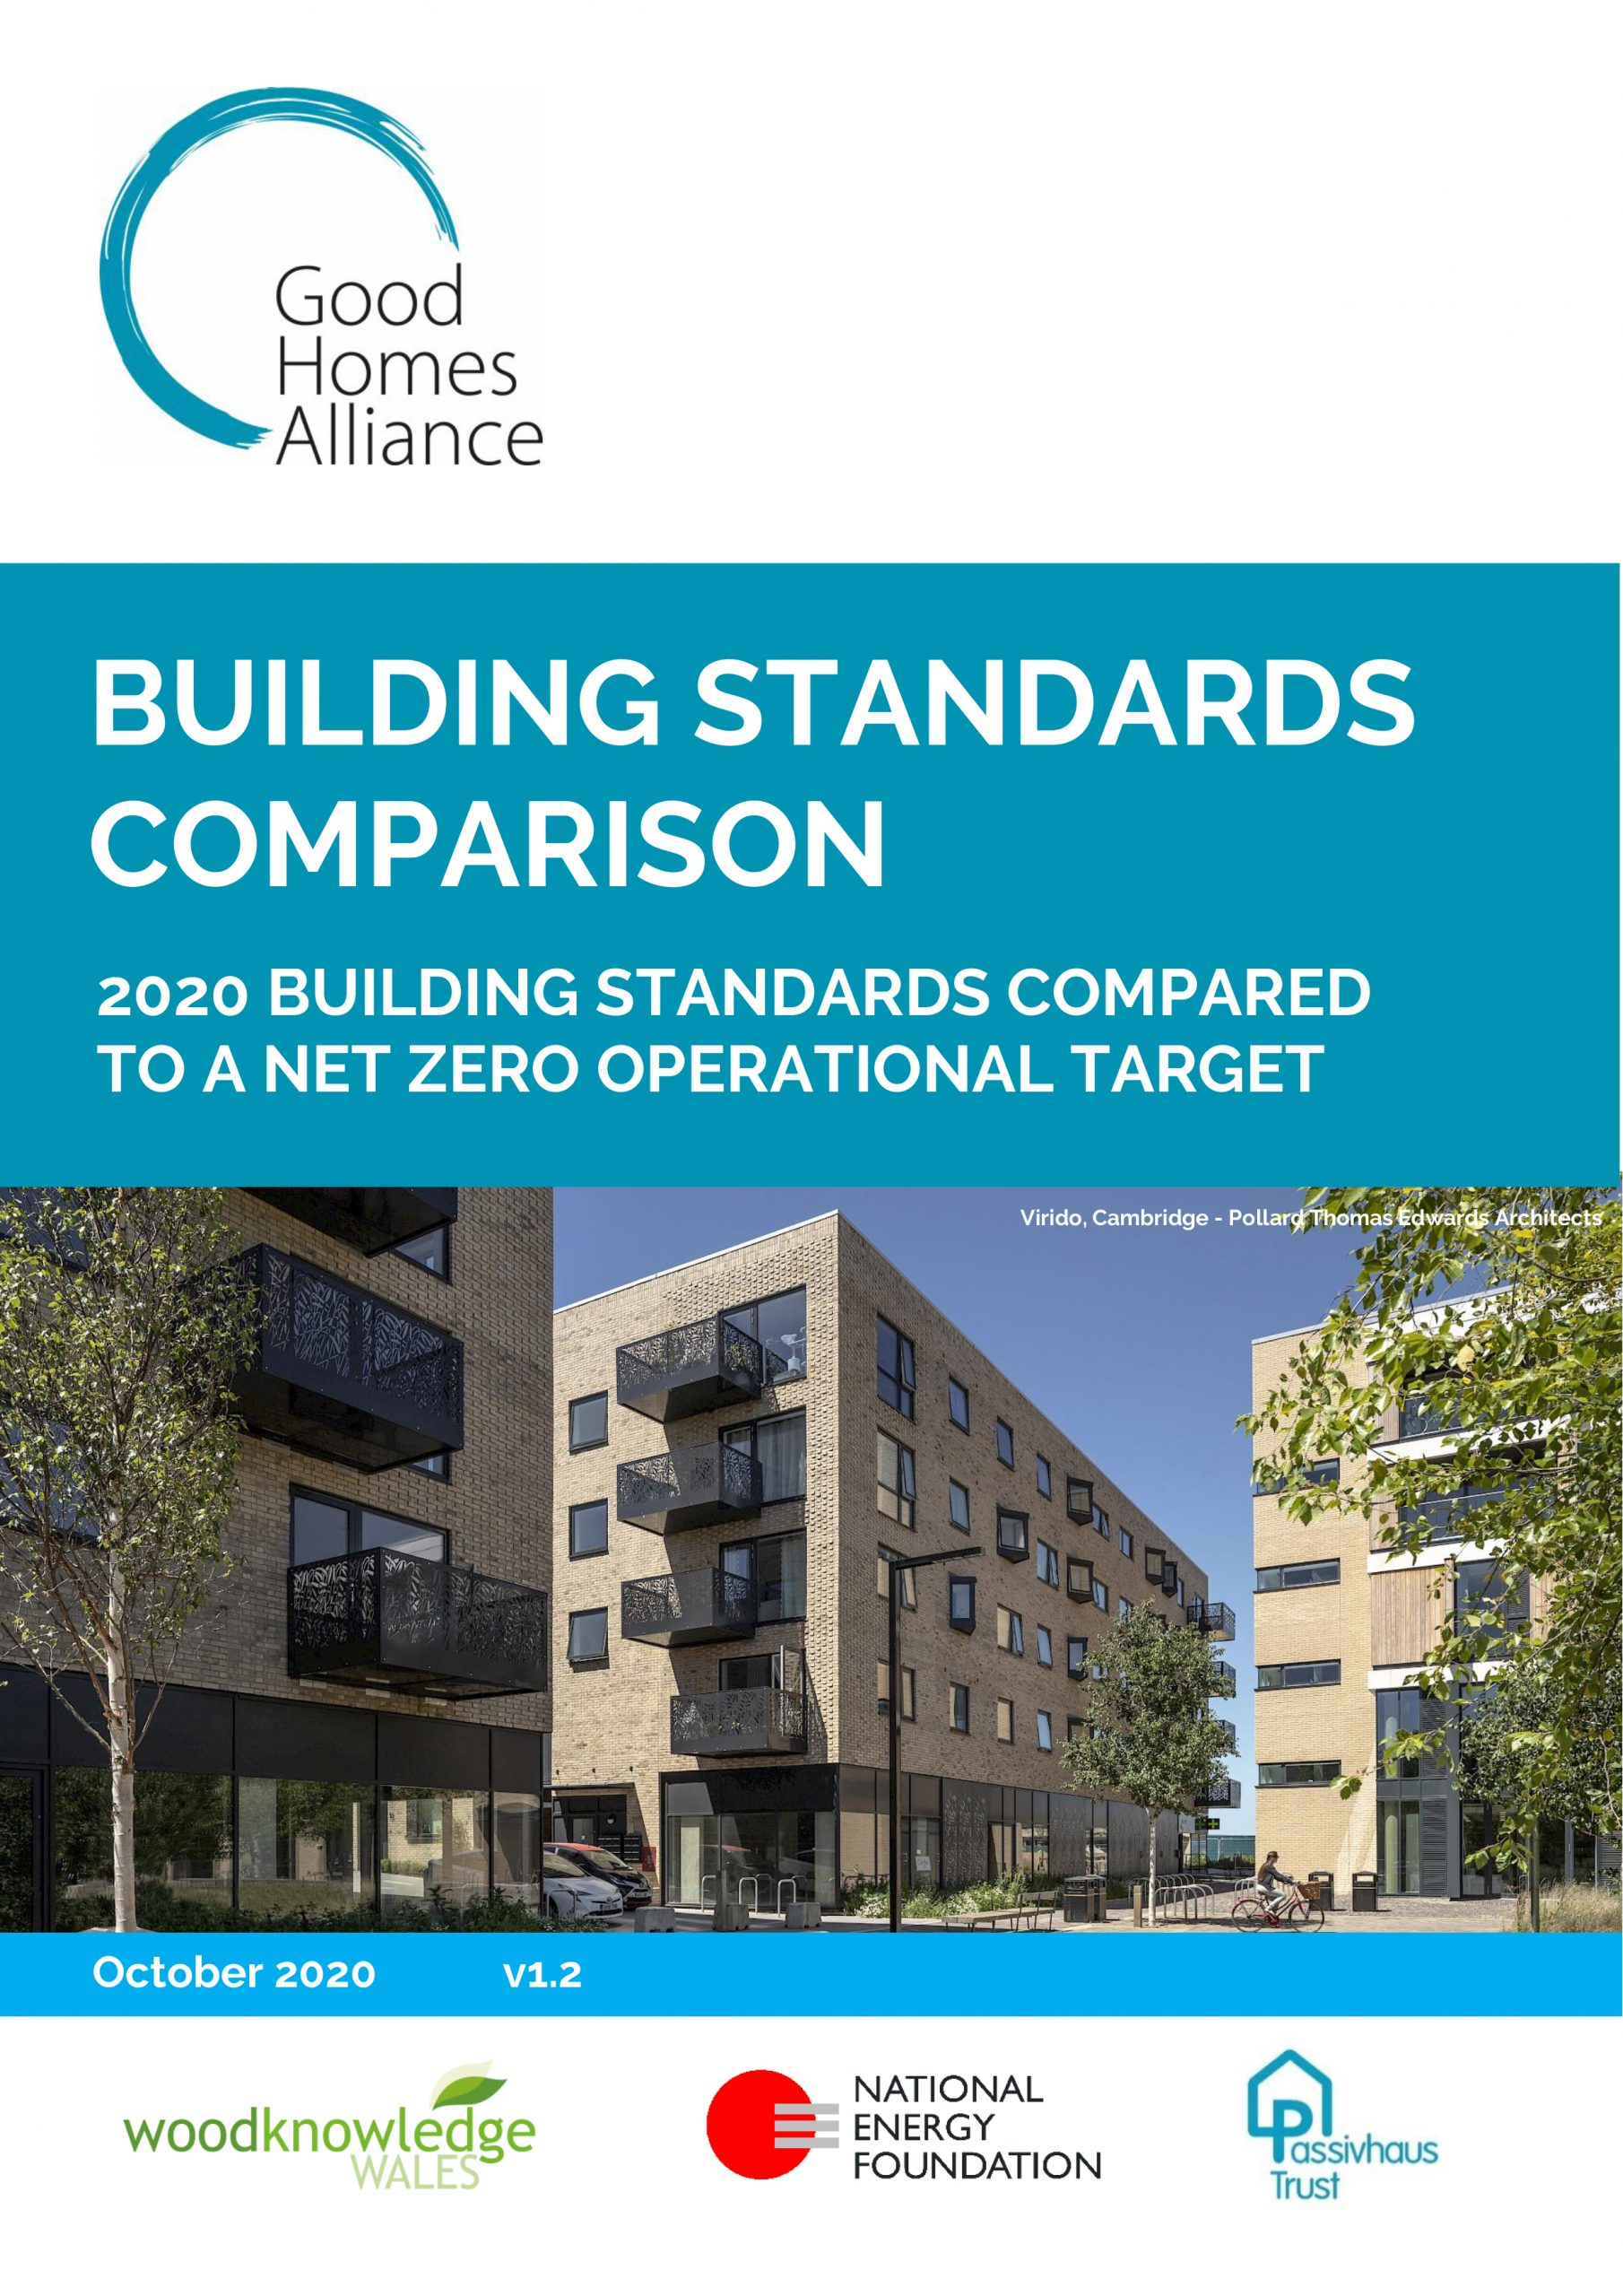 Building Standards Compared